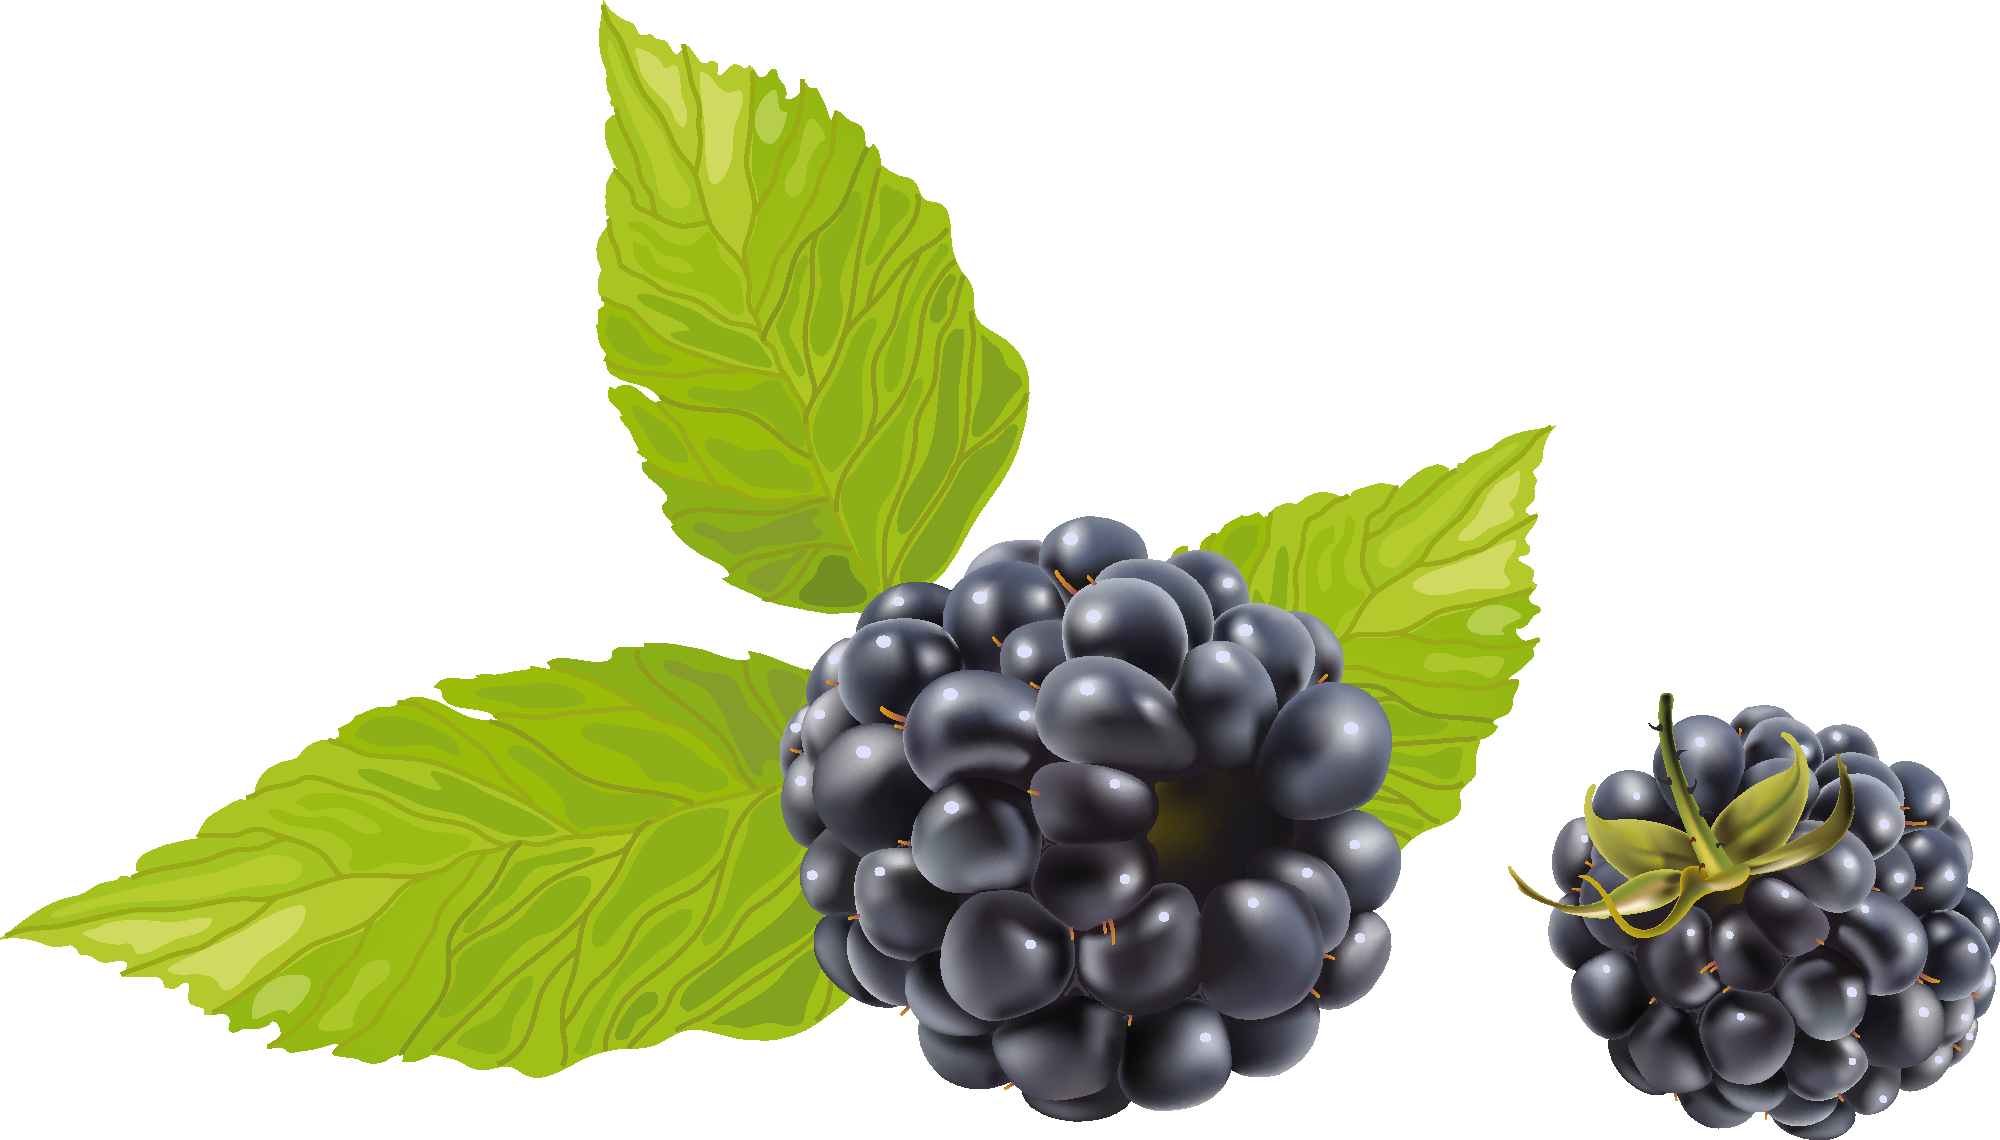 jpg royalty free download With leaves png image. Blackberry drawing juicy